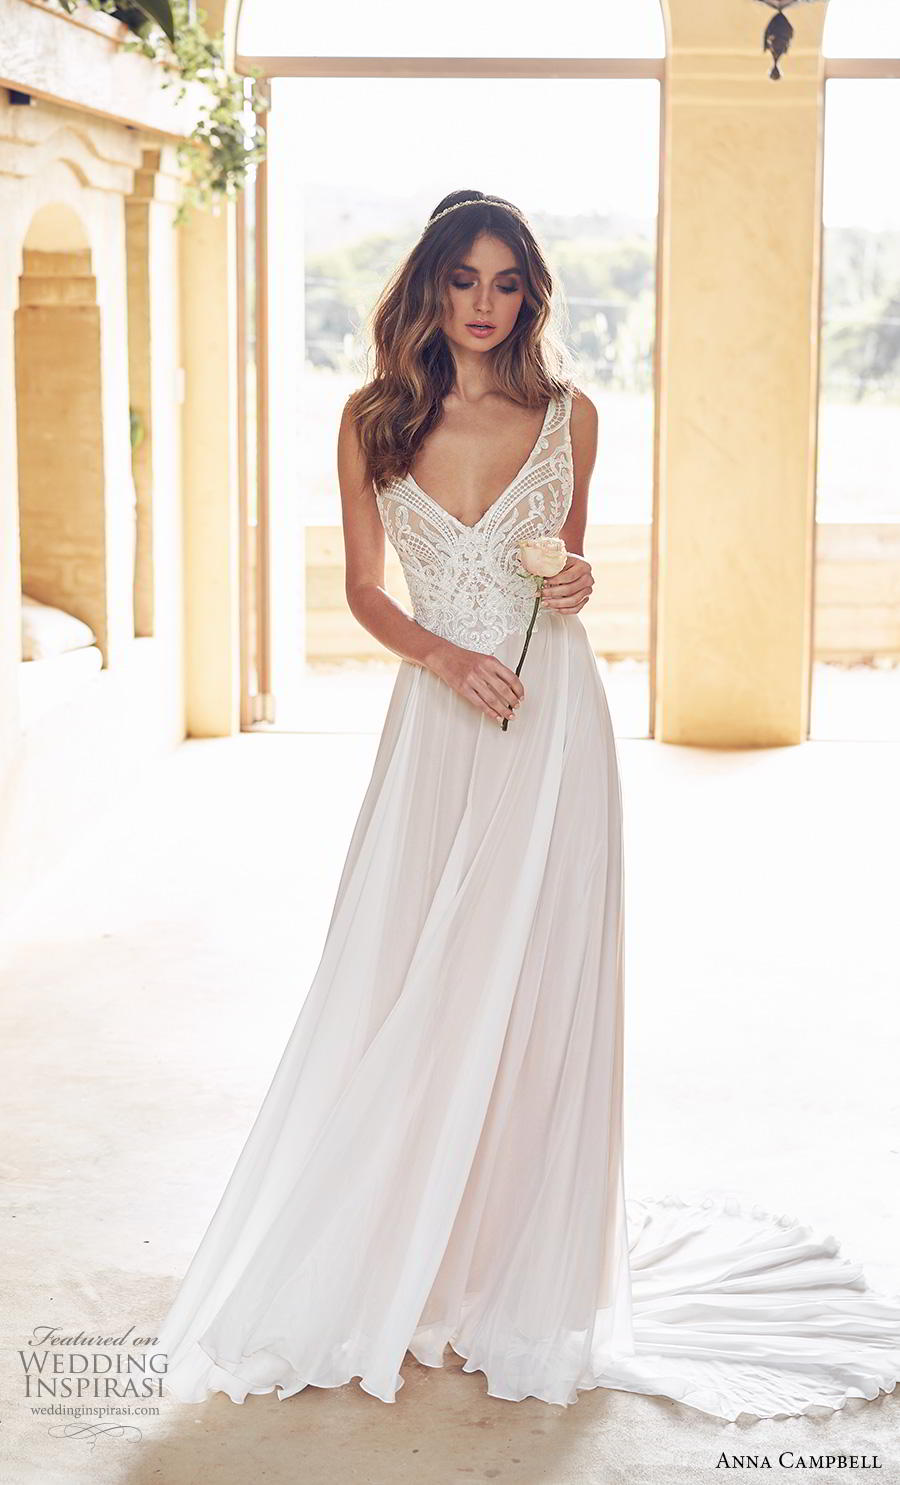 anna campbell 2019 bridal sleeveless with strap v neck heavily embellished bodice romantic soft a line wedding dress backless scoop back chapel train (15) mv